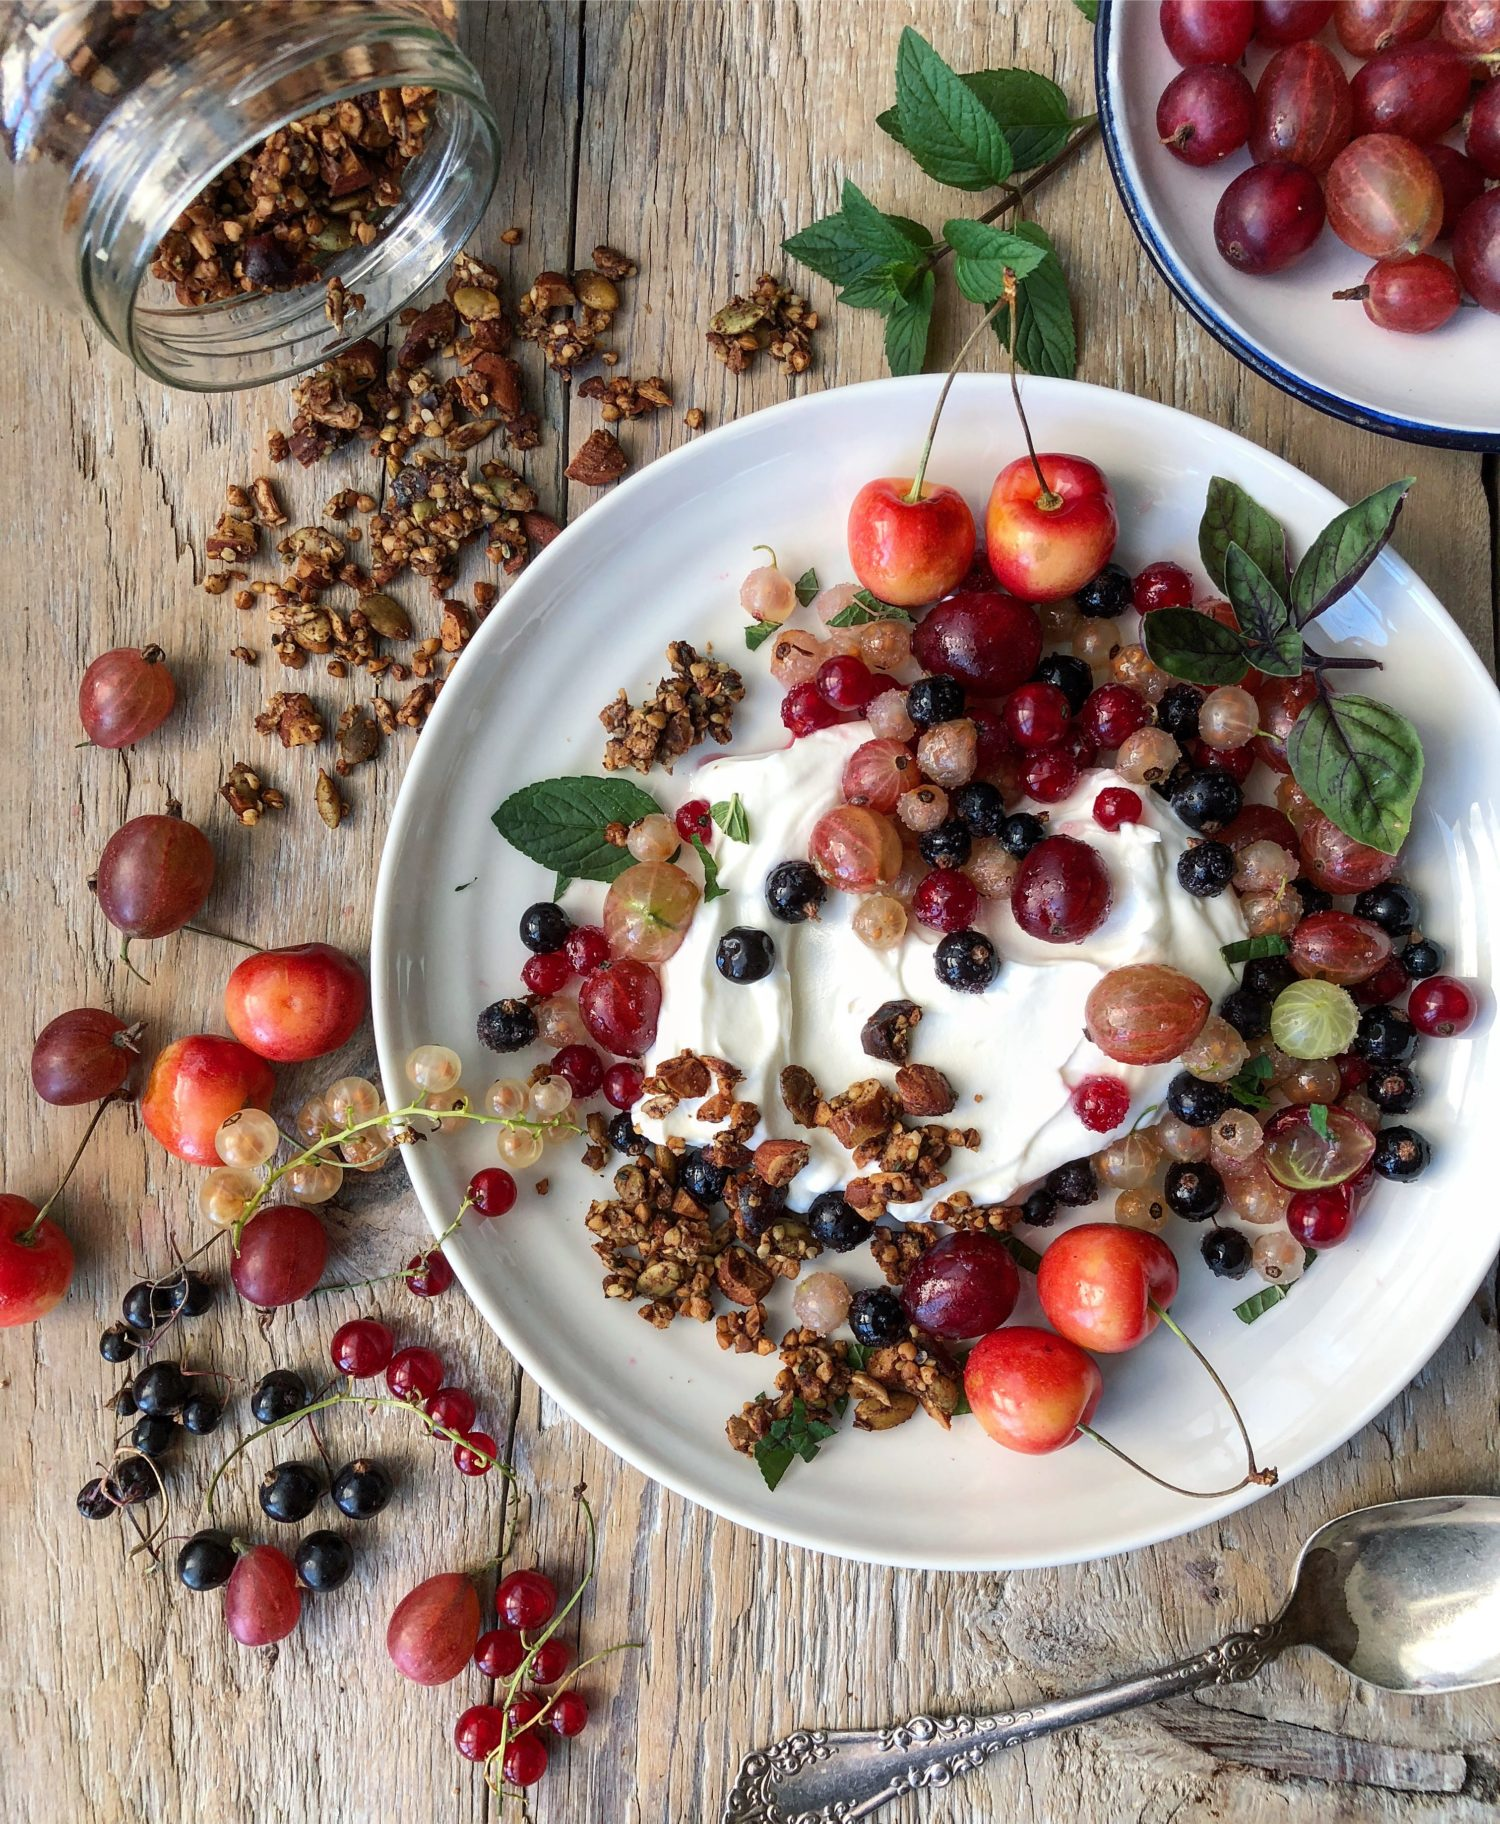 Tart and Sweet Currants and Gooseberries over Skyr with Gingerbread gluten free granola